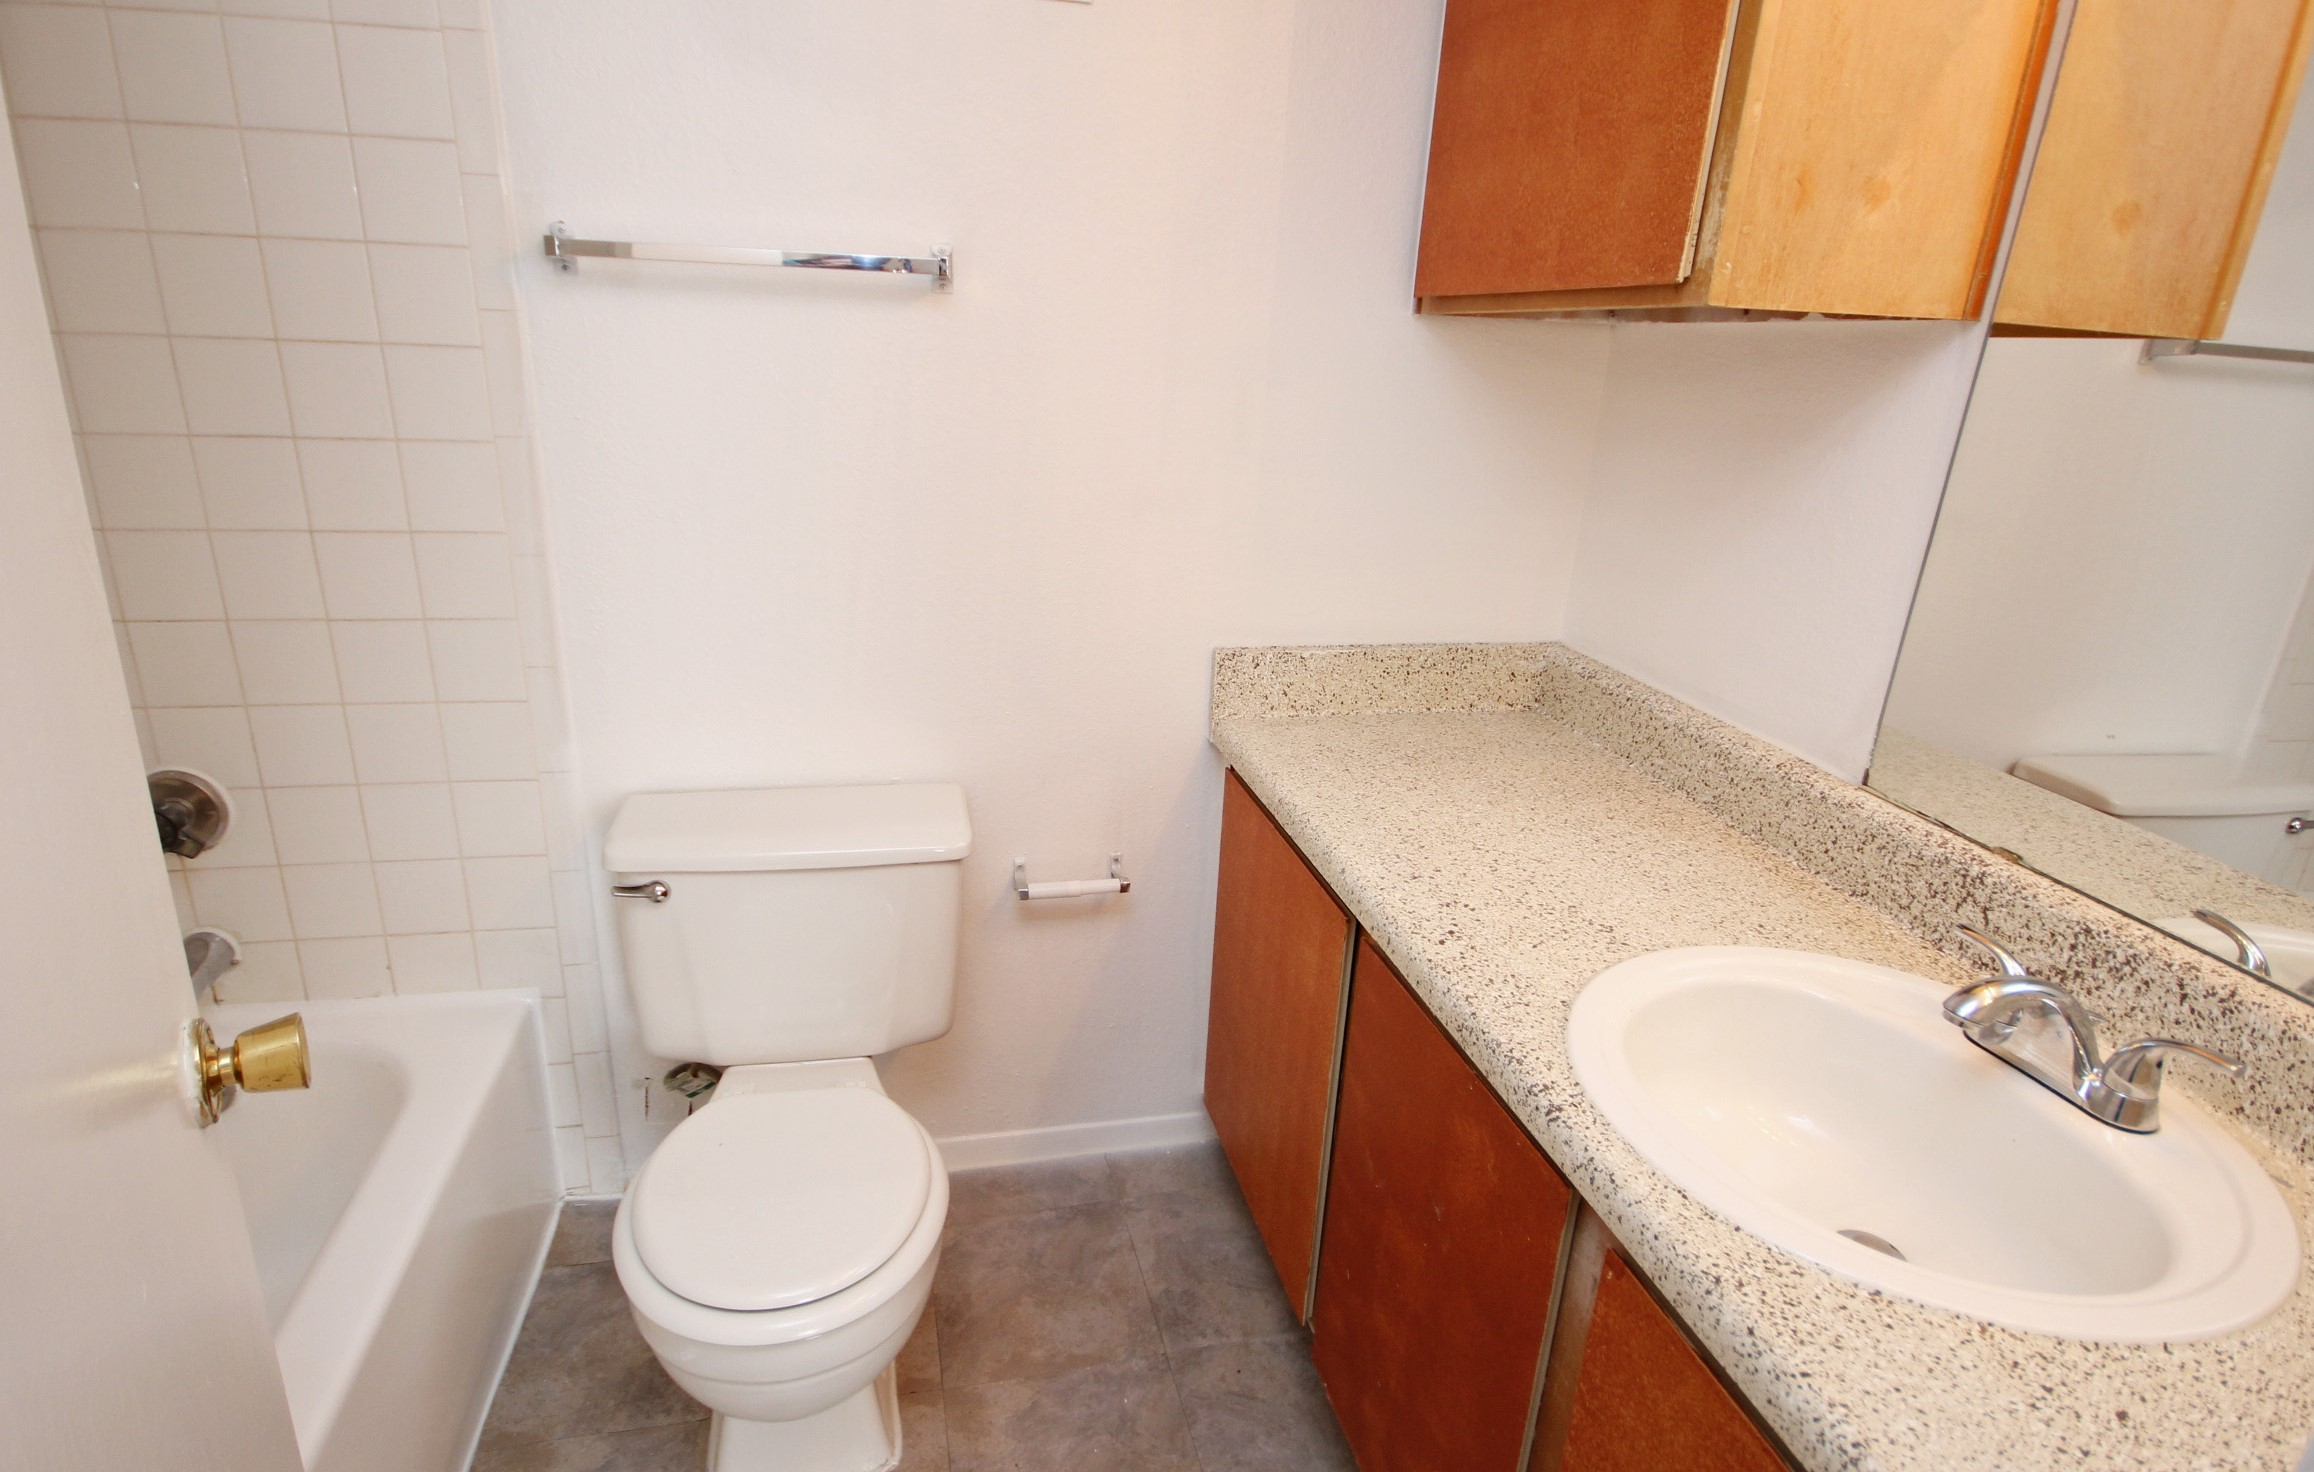 Shower and Bathtub Combination at Marine Creek Apartments in Fort Worth, Texas